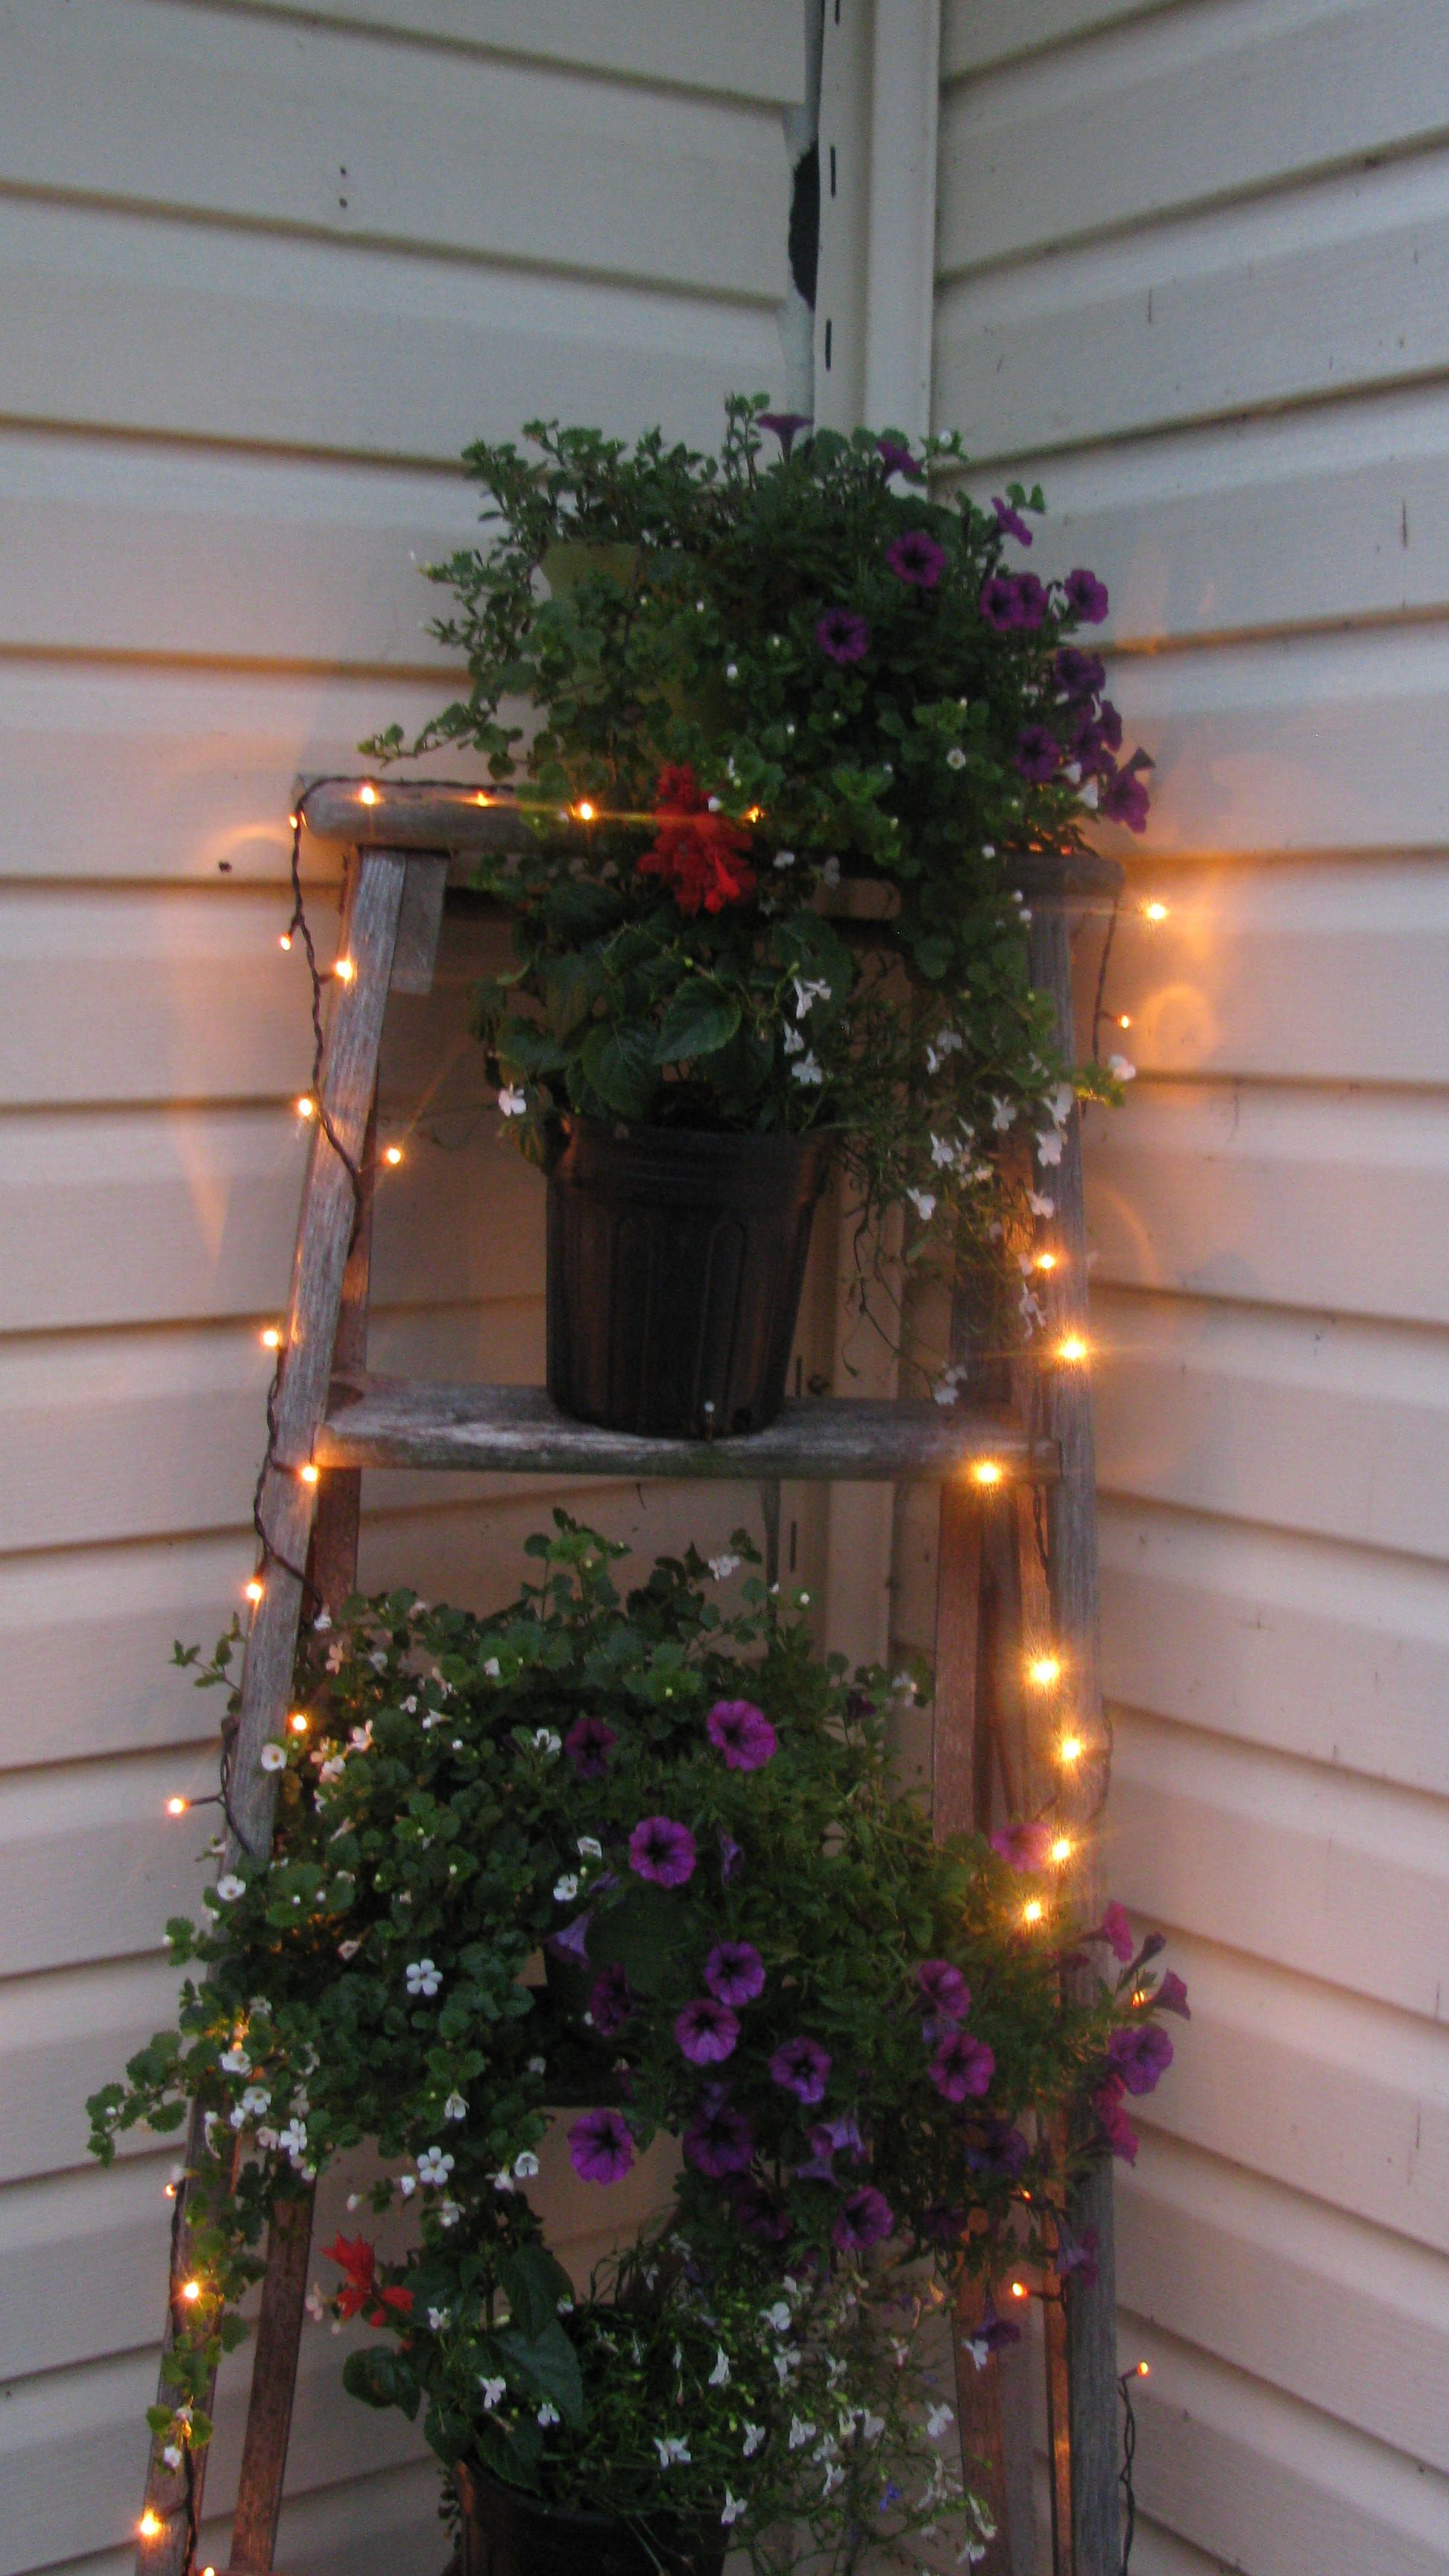 Rustic ladder and fairy lights mkutim chatham house pinterest